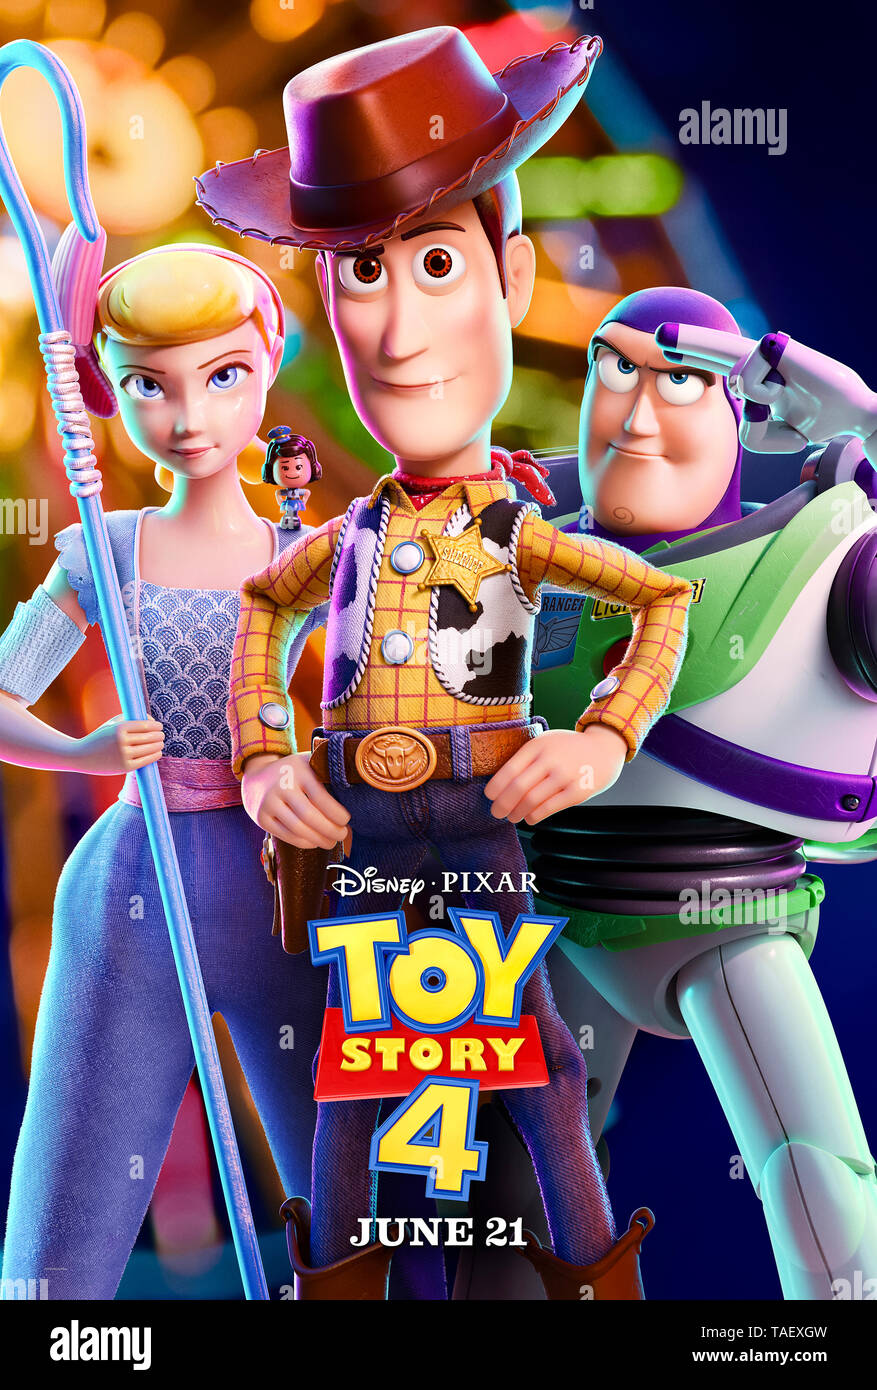 Toy Story 4 (2019) directed by Josh Cooley and starring  Keanu Reeves, Christina Hendricks, Tom Hanks and Tim Allen. The toys are joined by a new arrival and undertake a road trip. - Stock Image